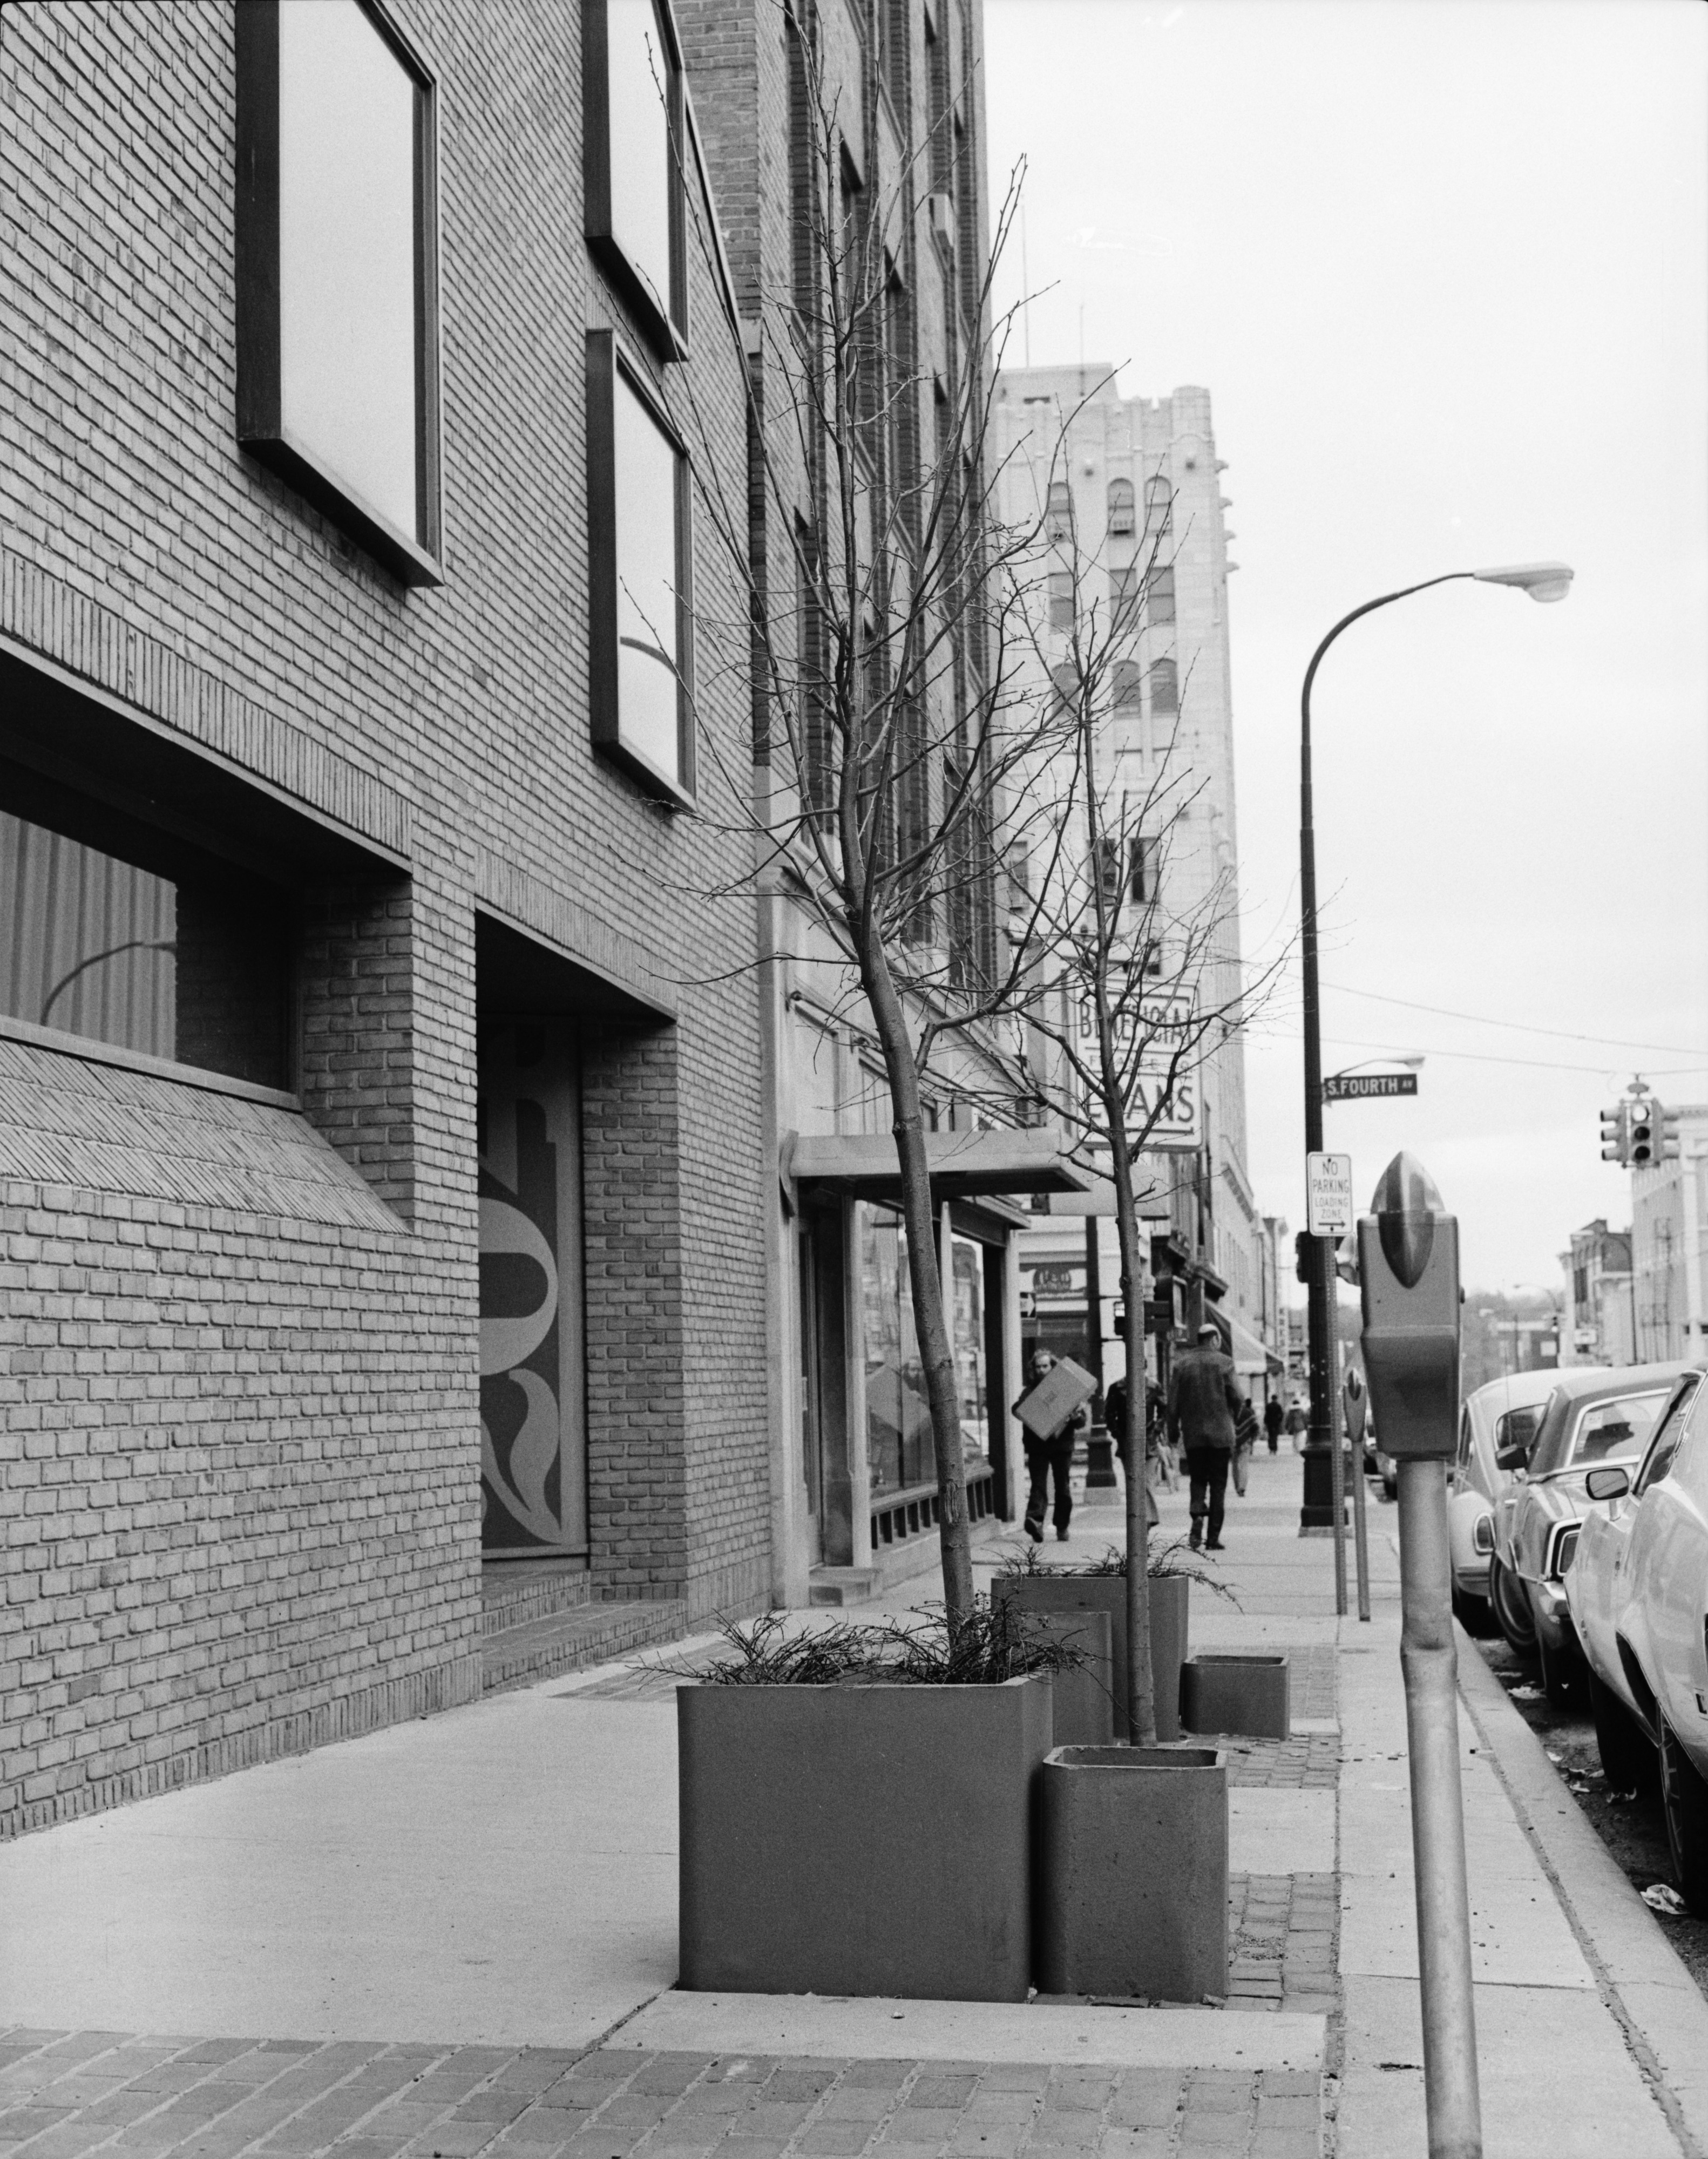 Hobbs & Black, Architects, with sculpture-landscaping outside offices at 204 E. Washington, April 1974 image